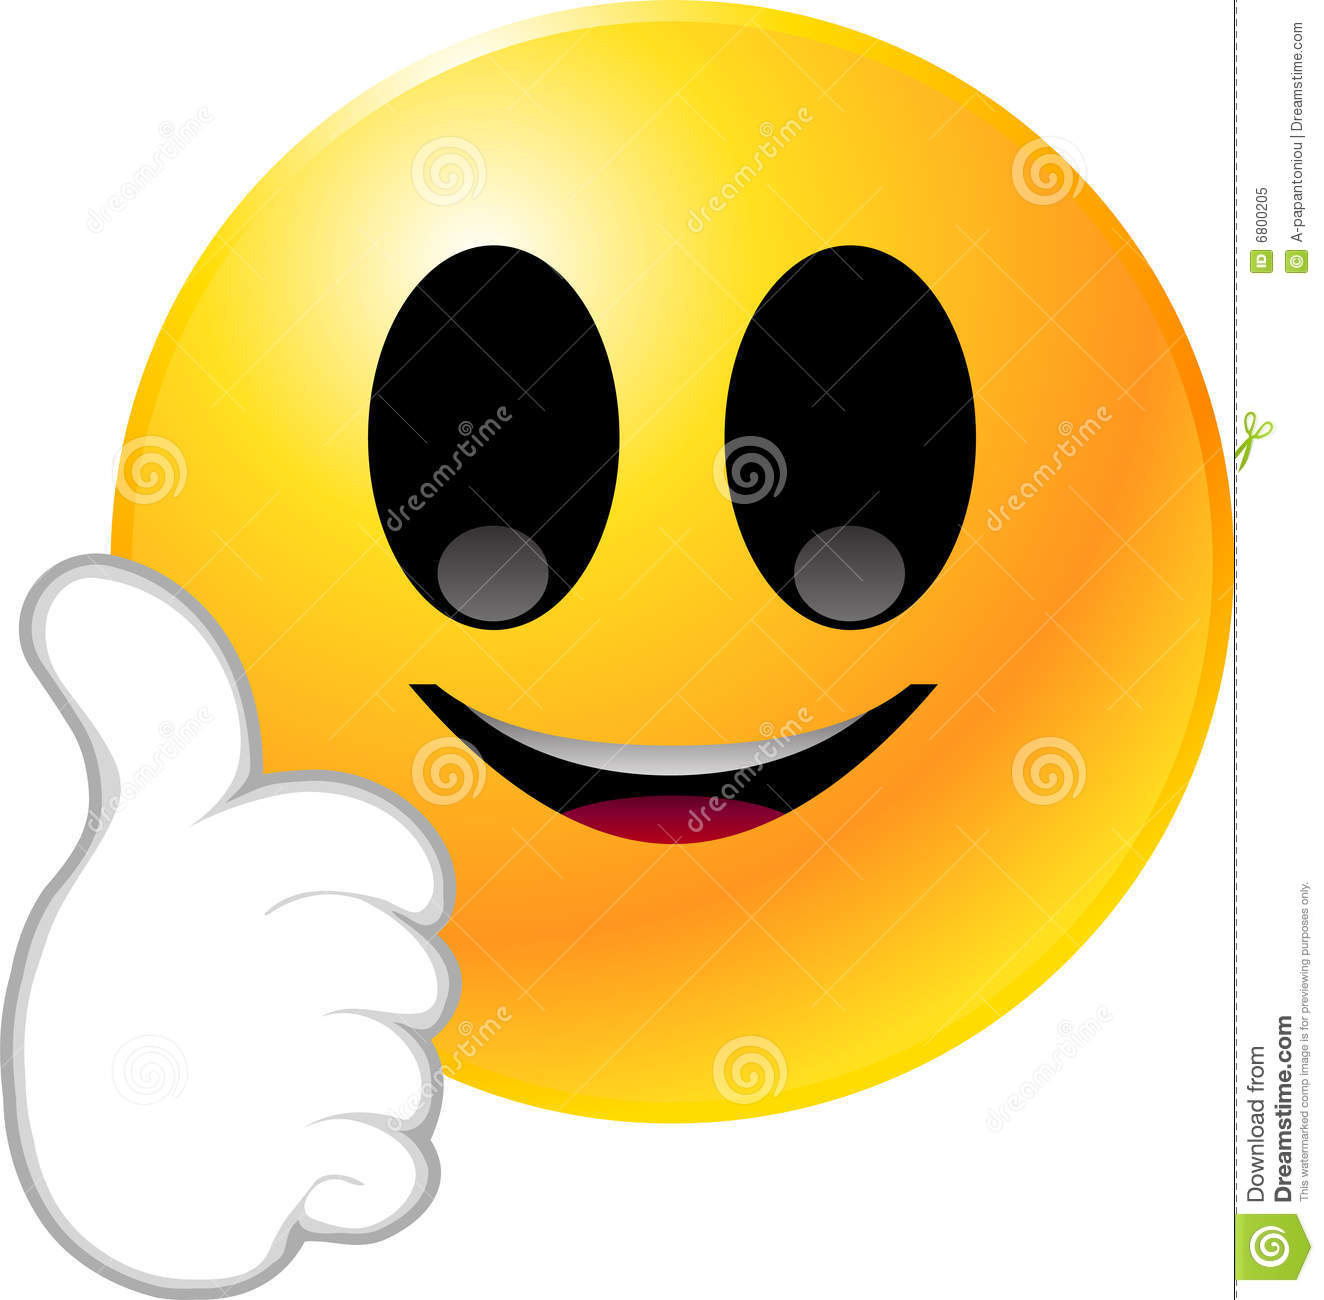 Free clipart smiley face thumbs up jpg freeuse stock Free clip art smiley faces emotions - ClipartFest jpg freeuse stock